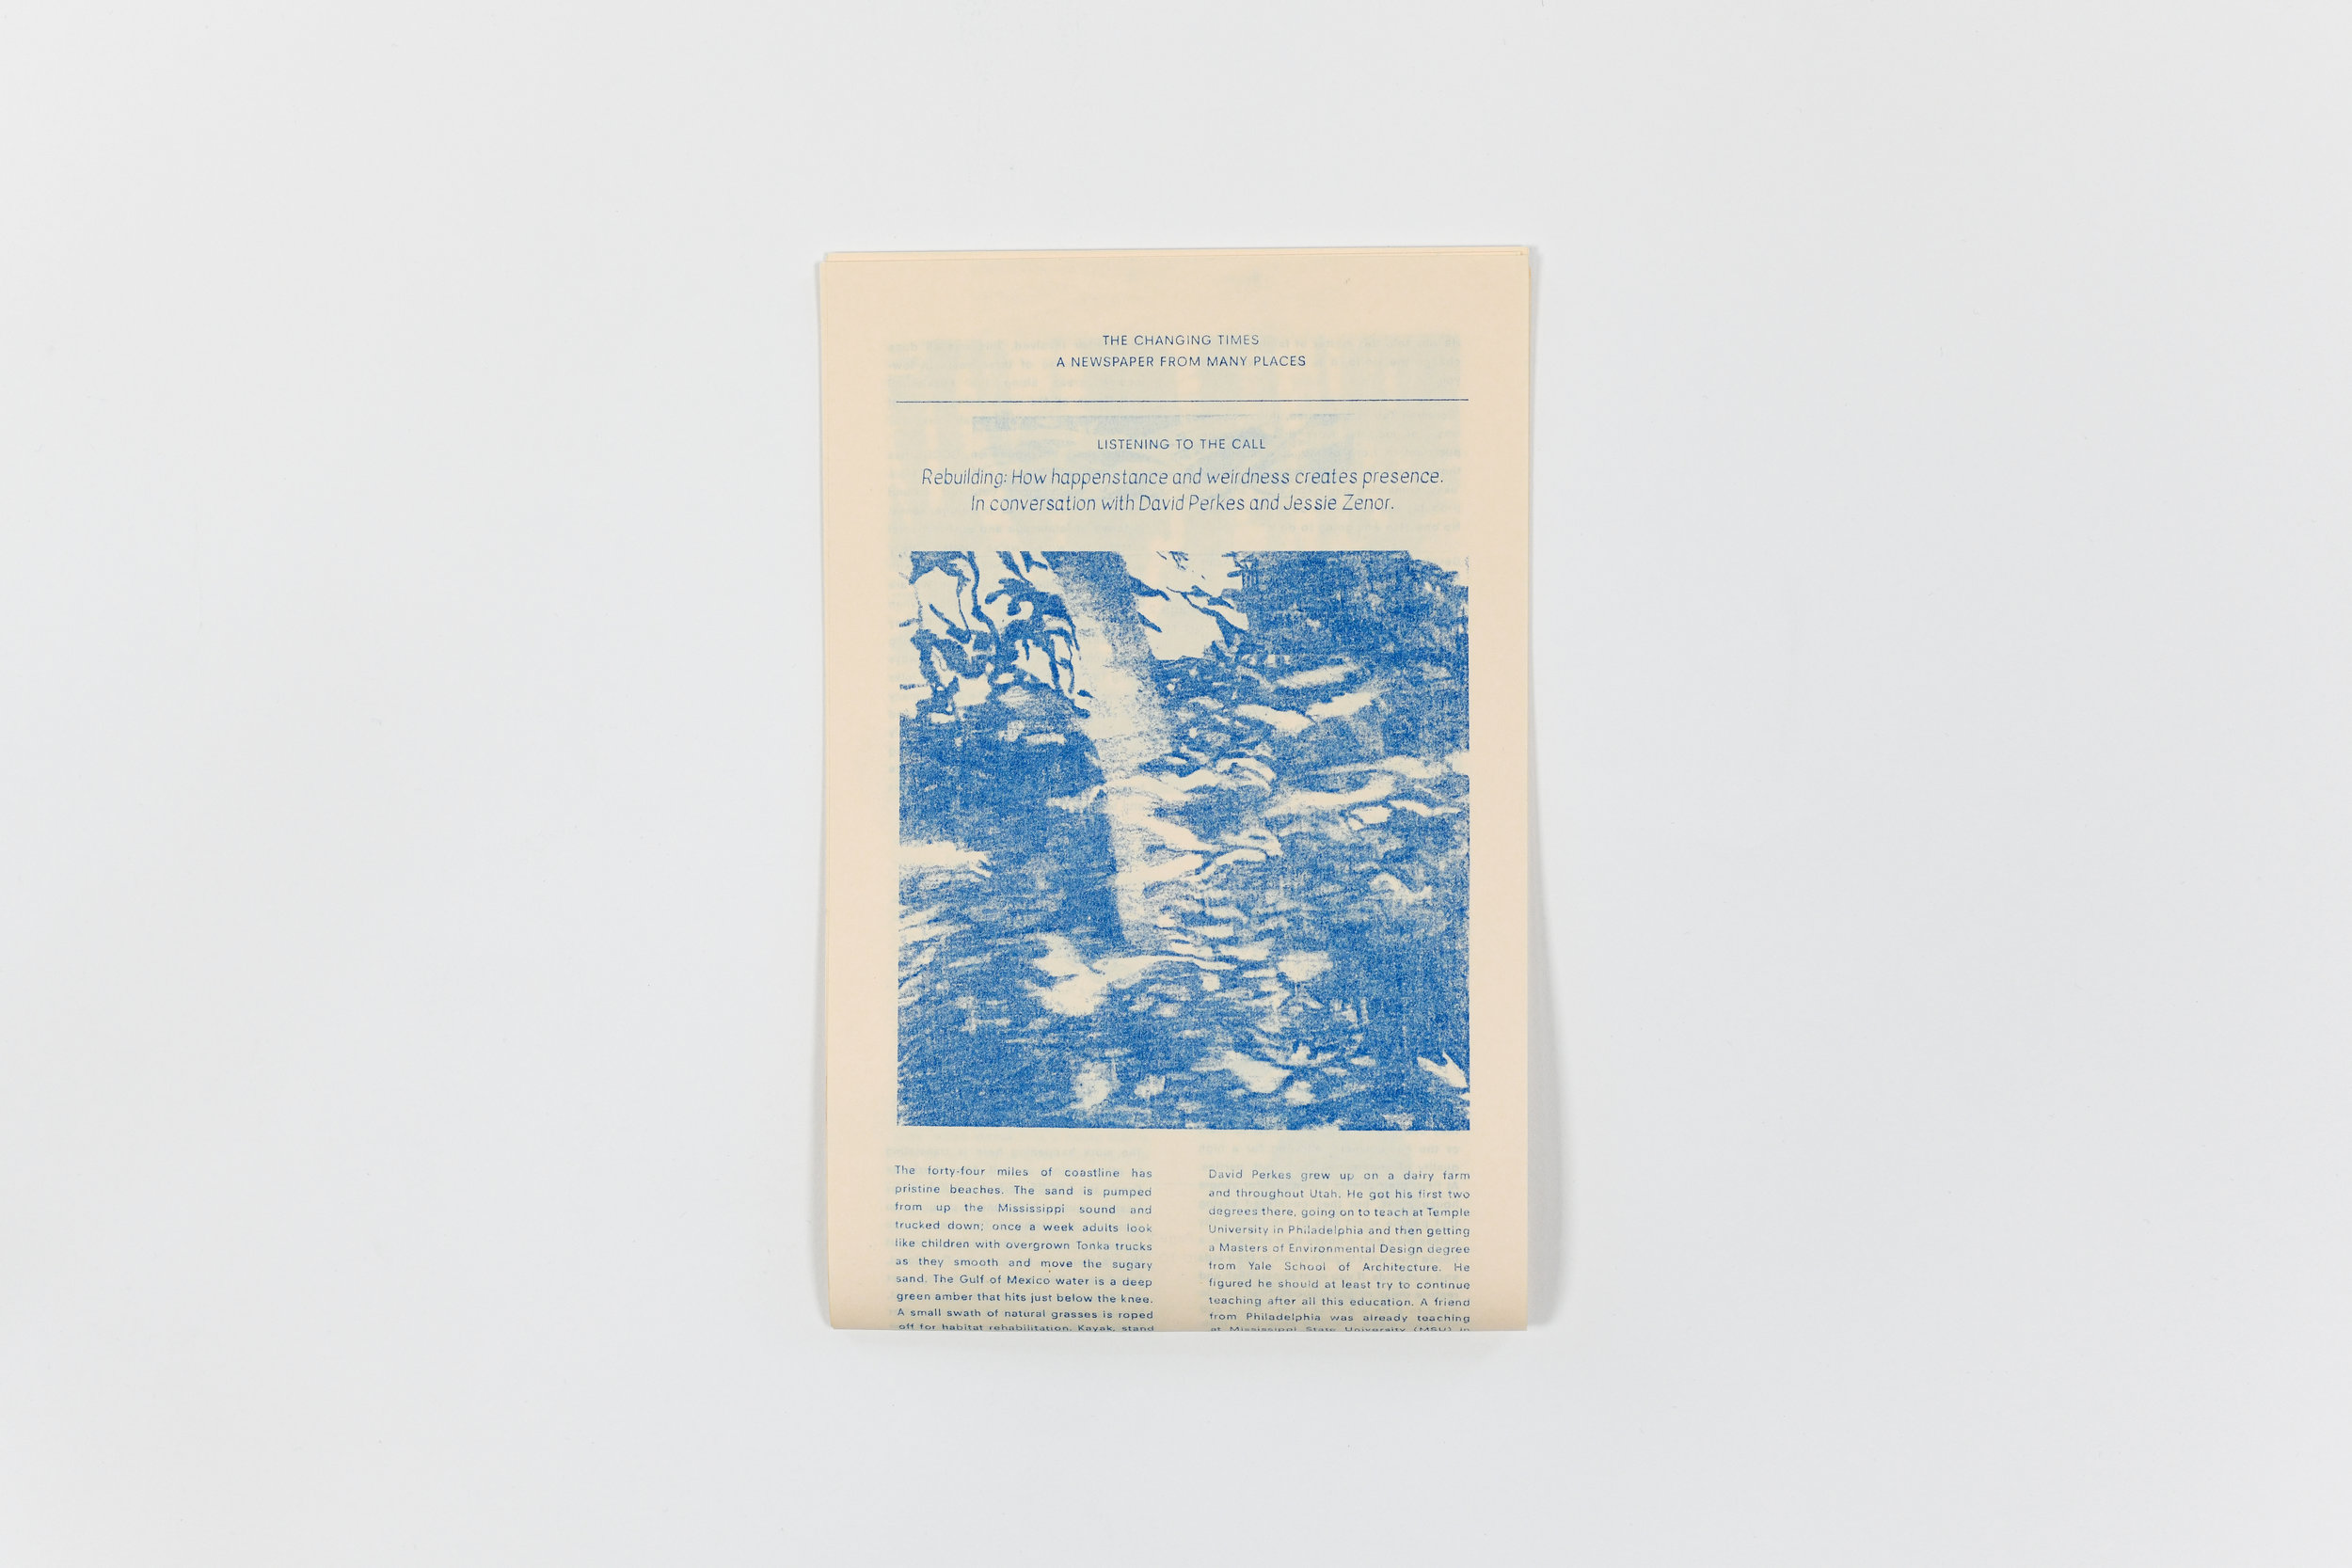 Issue 9: The Gulf Coast of Mississippi